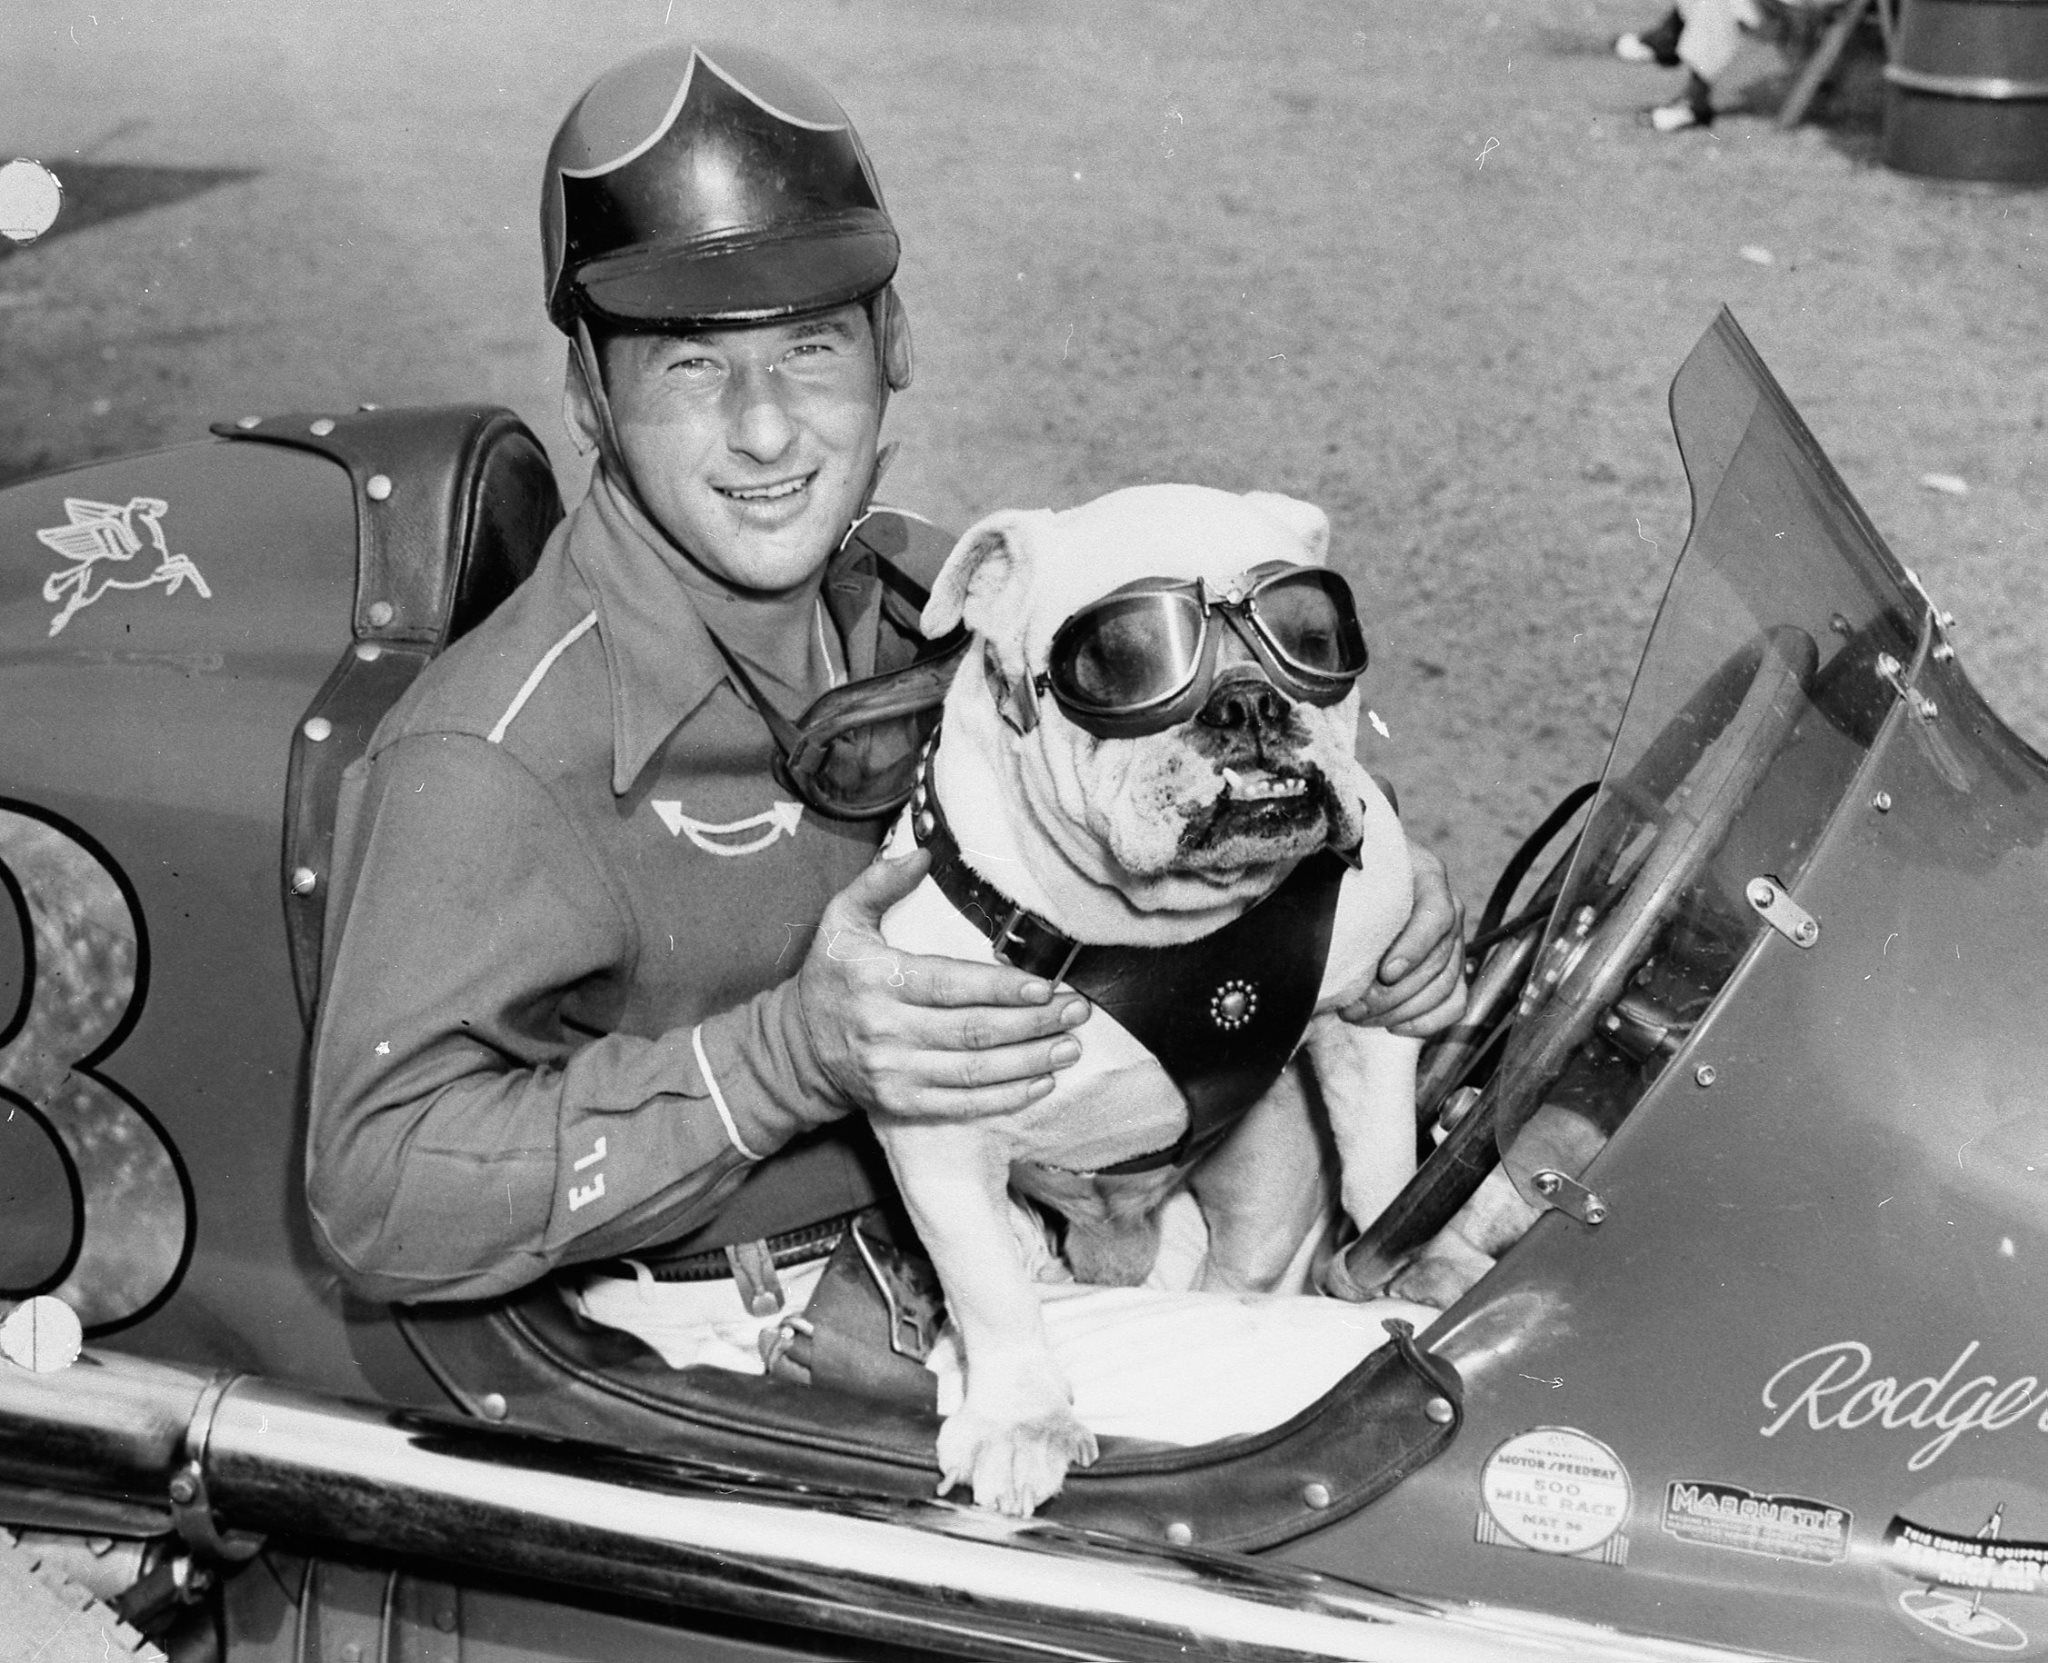 1951 Press Photo Rodger Ward At Indianapolis 500 With His Bulldog